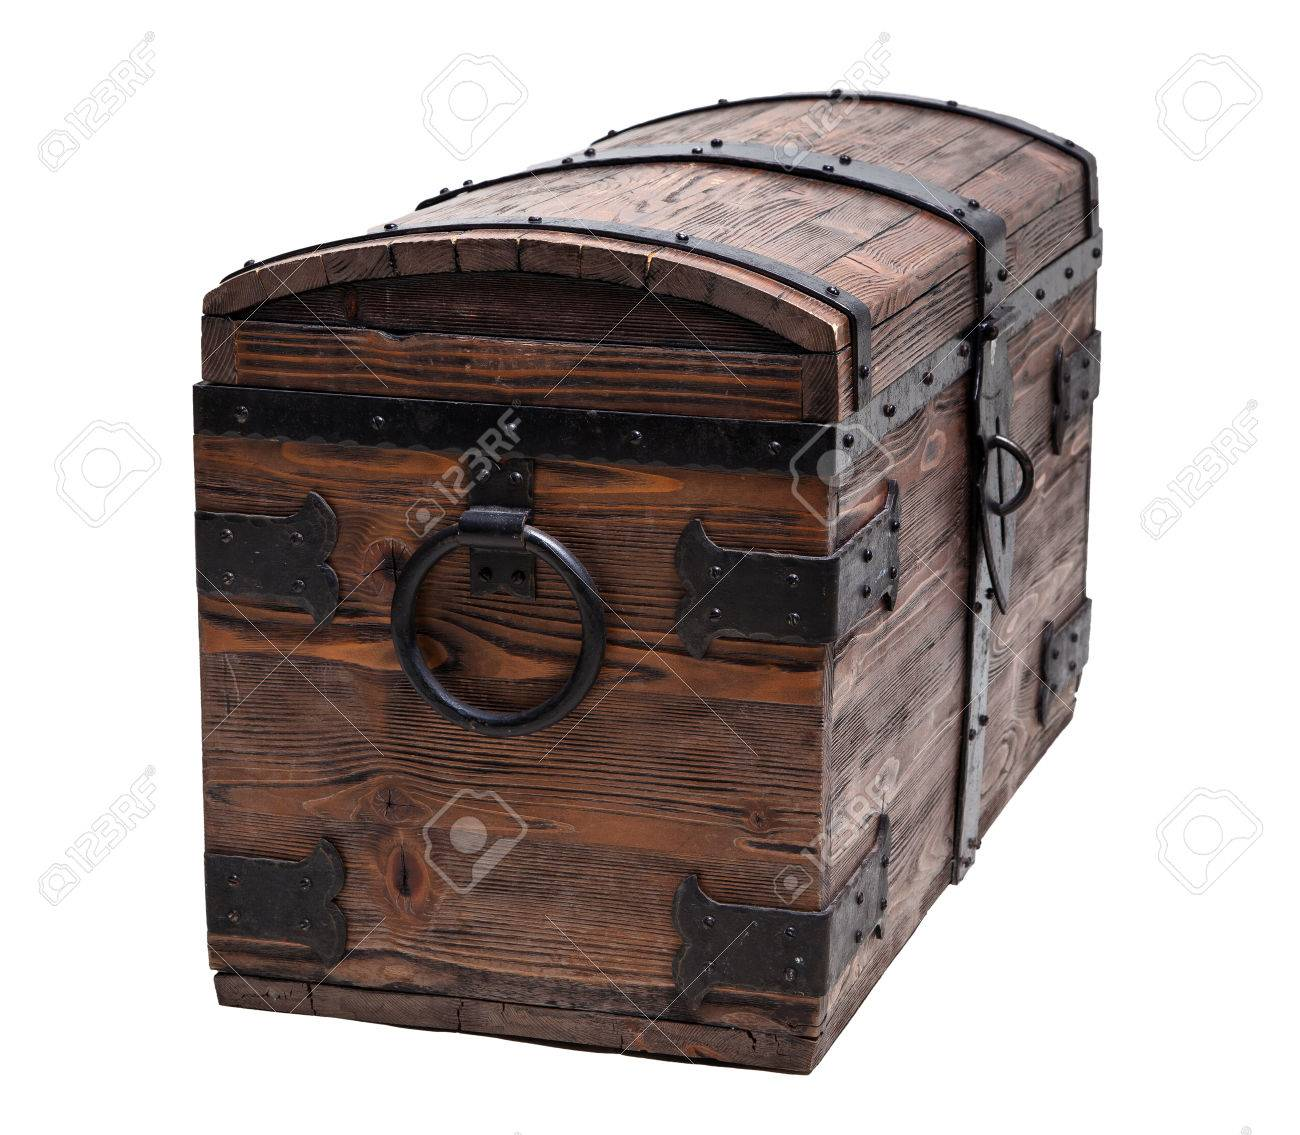 Closed Wooden Chest With Iron Fittings Stock Photo Picture And